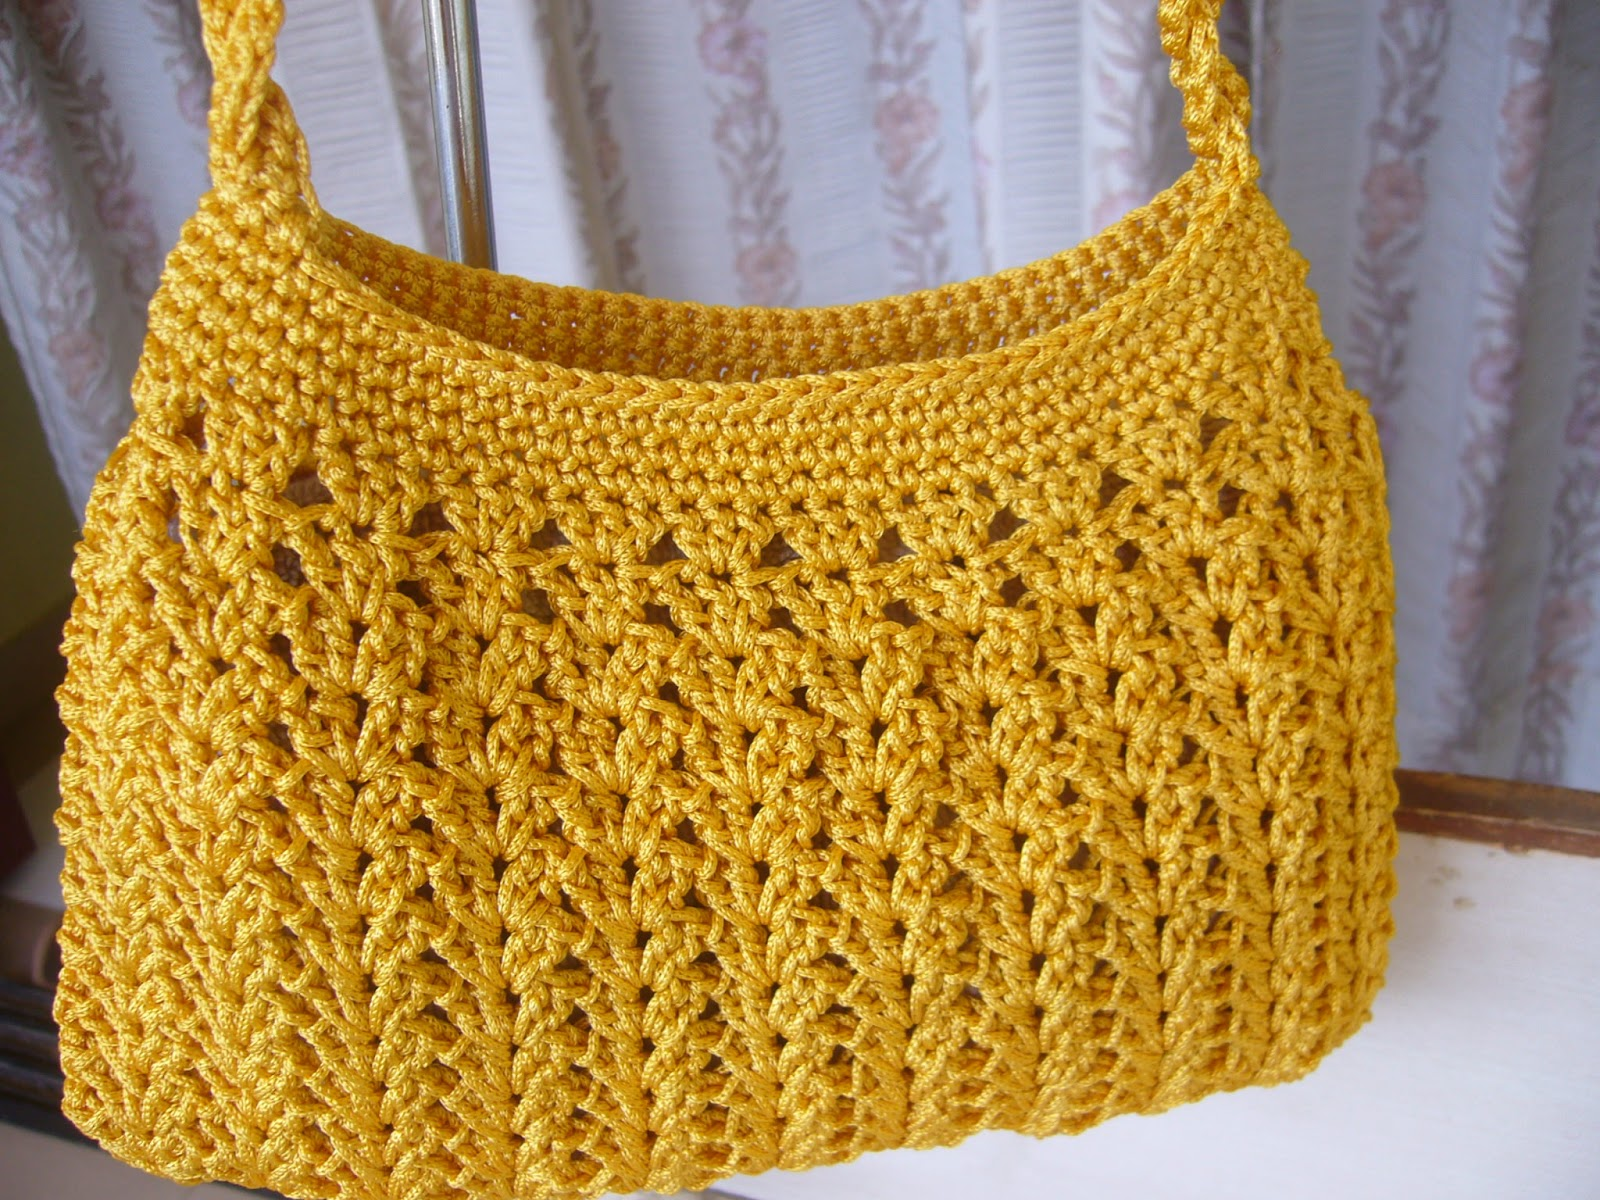 How To Crochet A Purse : Crochetkari: Golden yellow crochet purse